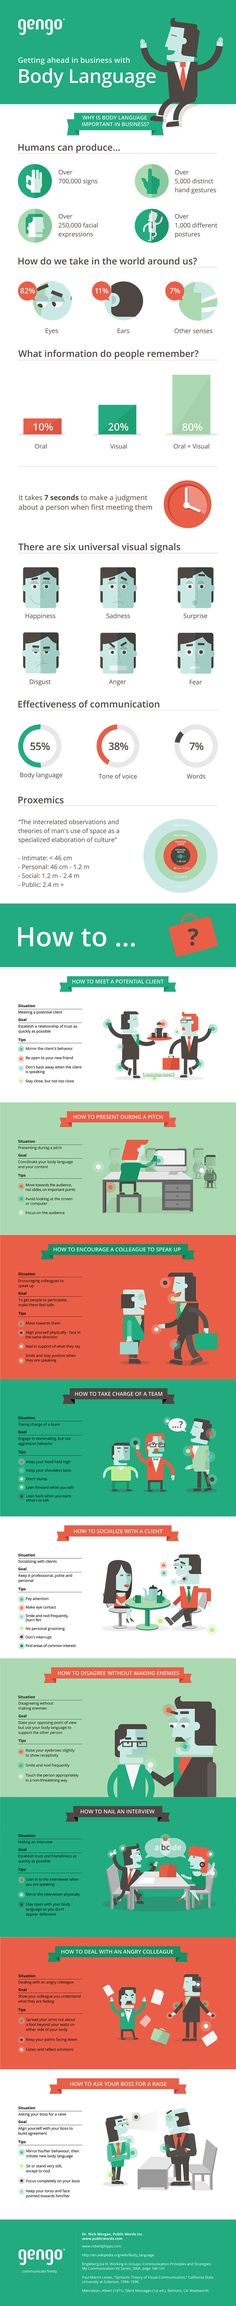 This Body Language Infographic May Save -- Or Land -- Your Job